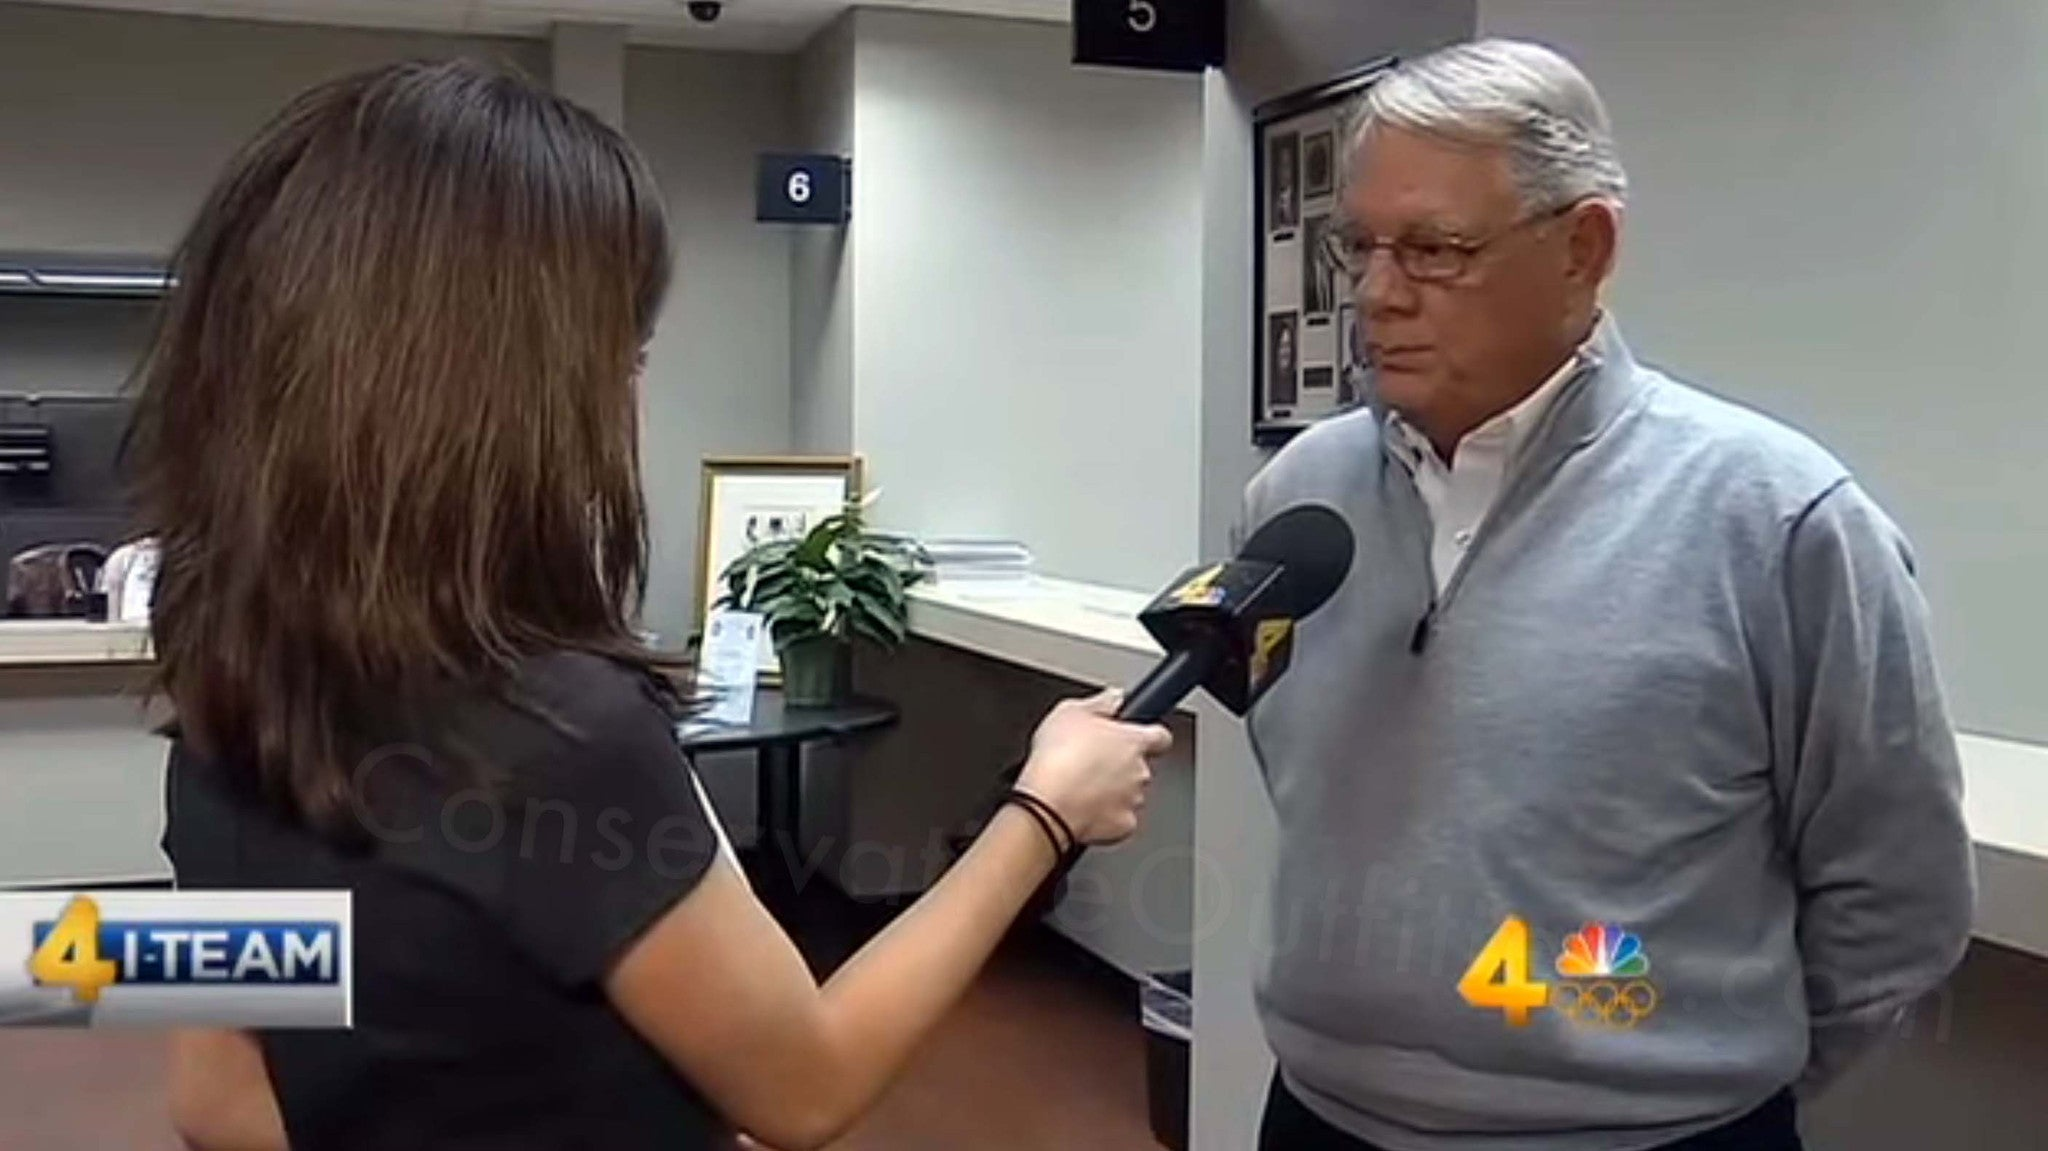 Fake republican calls Nashville TV reporter a B*tch for exposing him